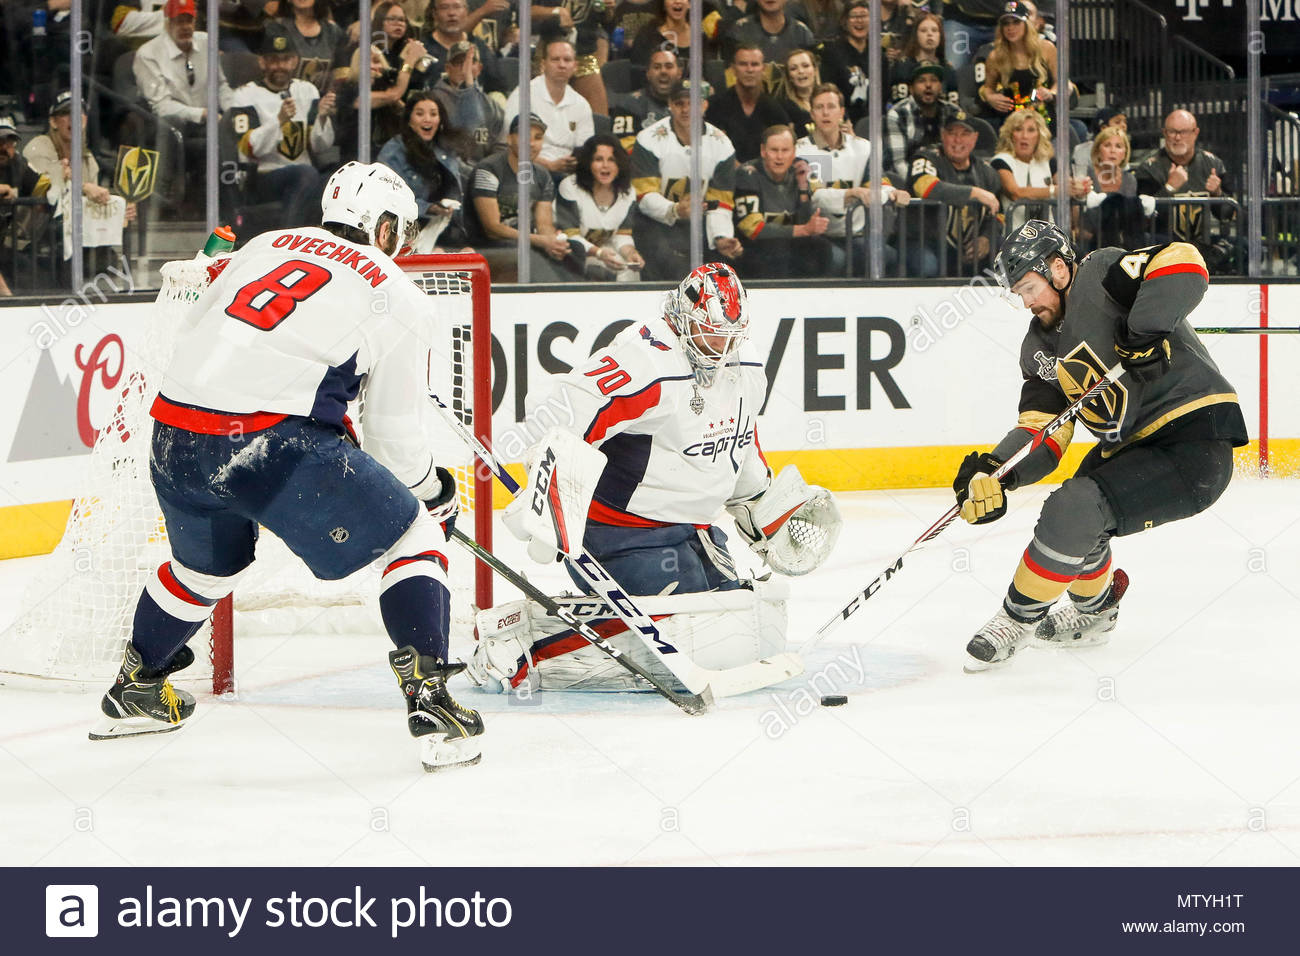 200352e44d1 Nhl Stock Photos   Nhl Stock Images - Page 7 - Alamy